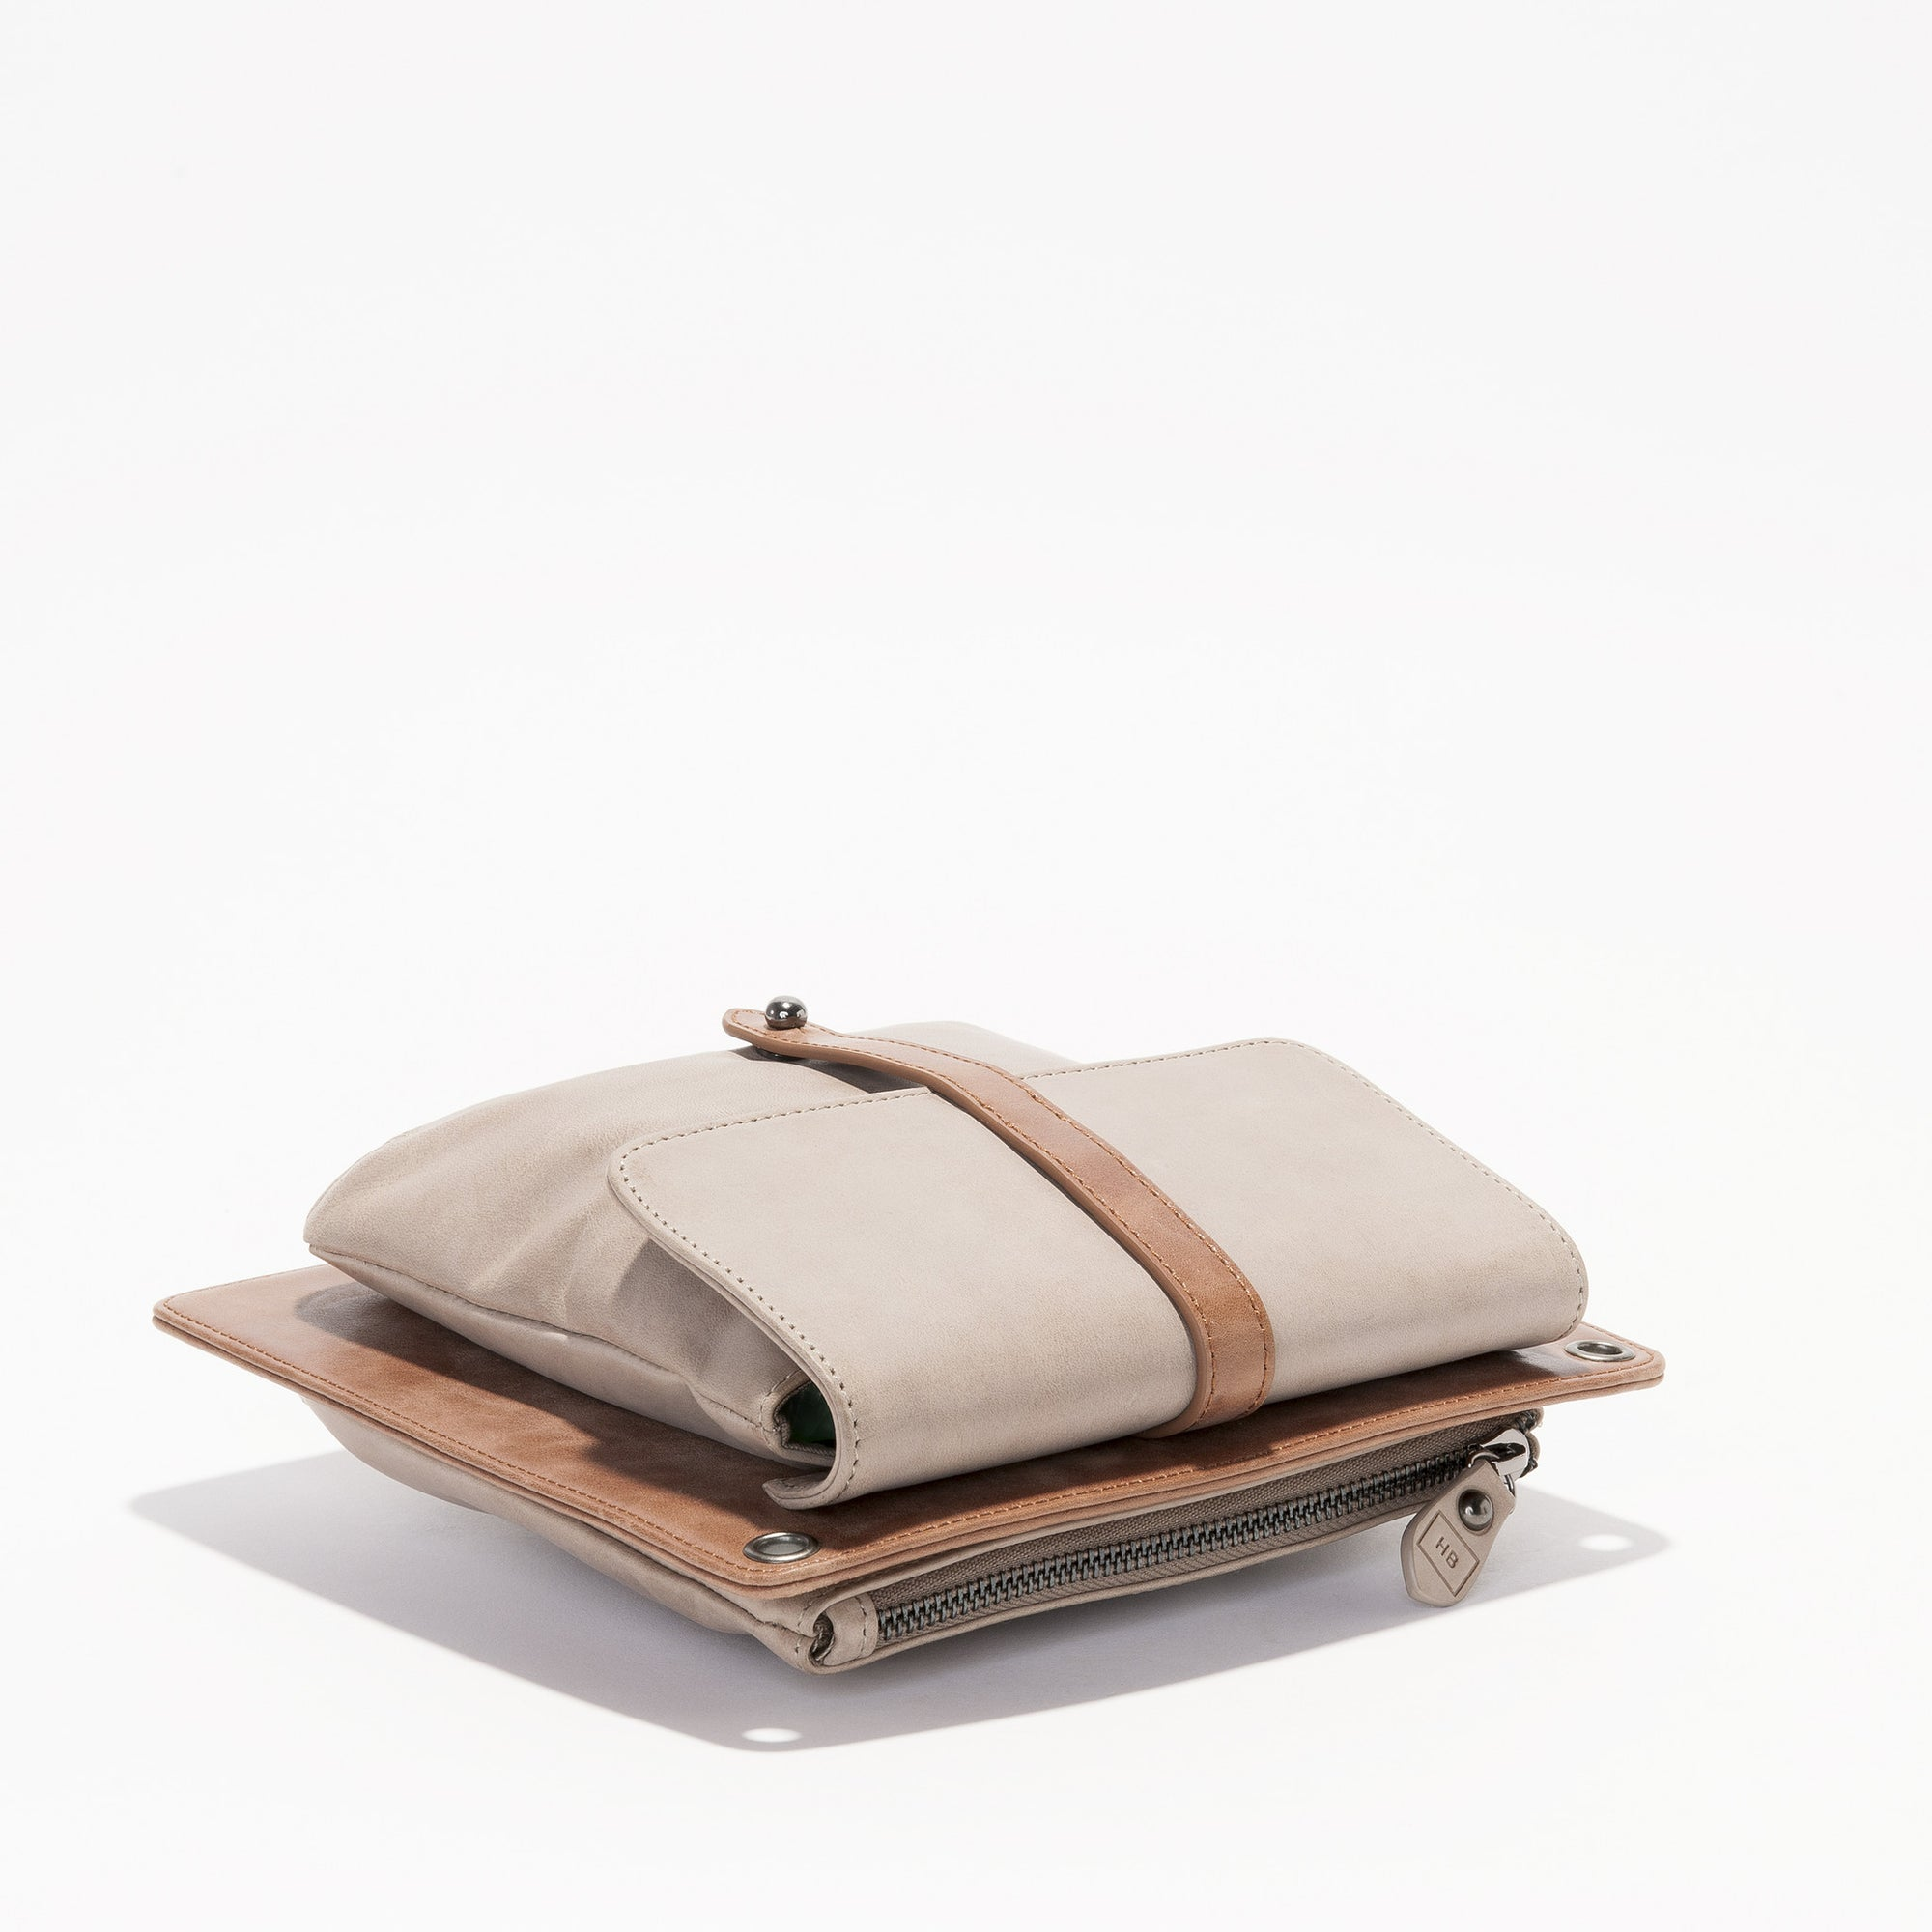 The Elements Bag - Stone / Dk Tan